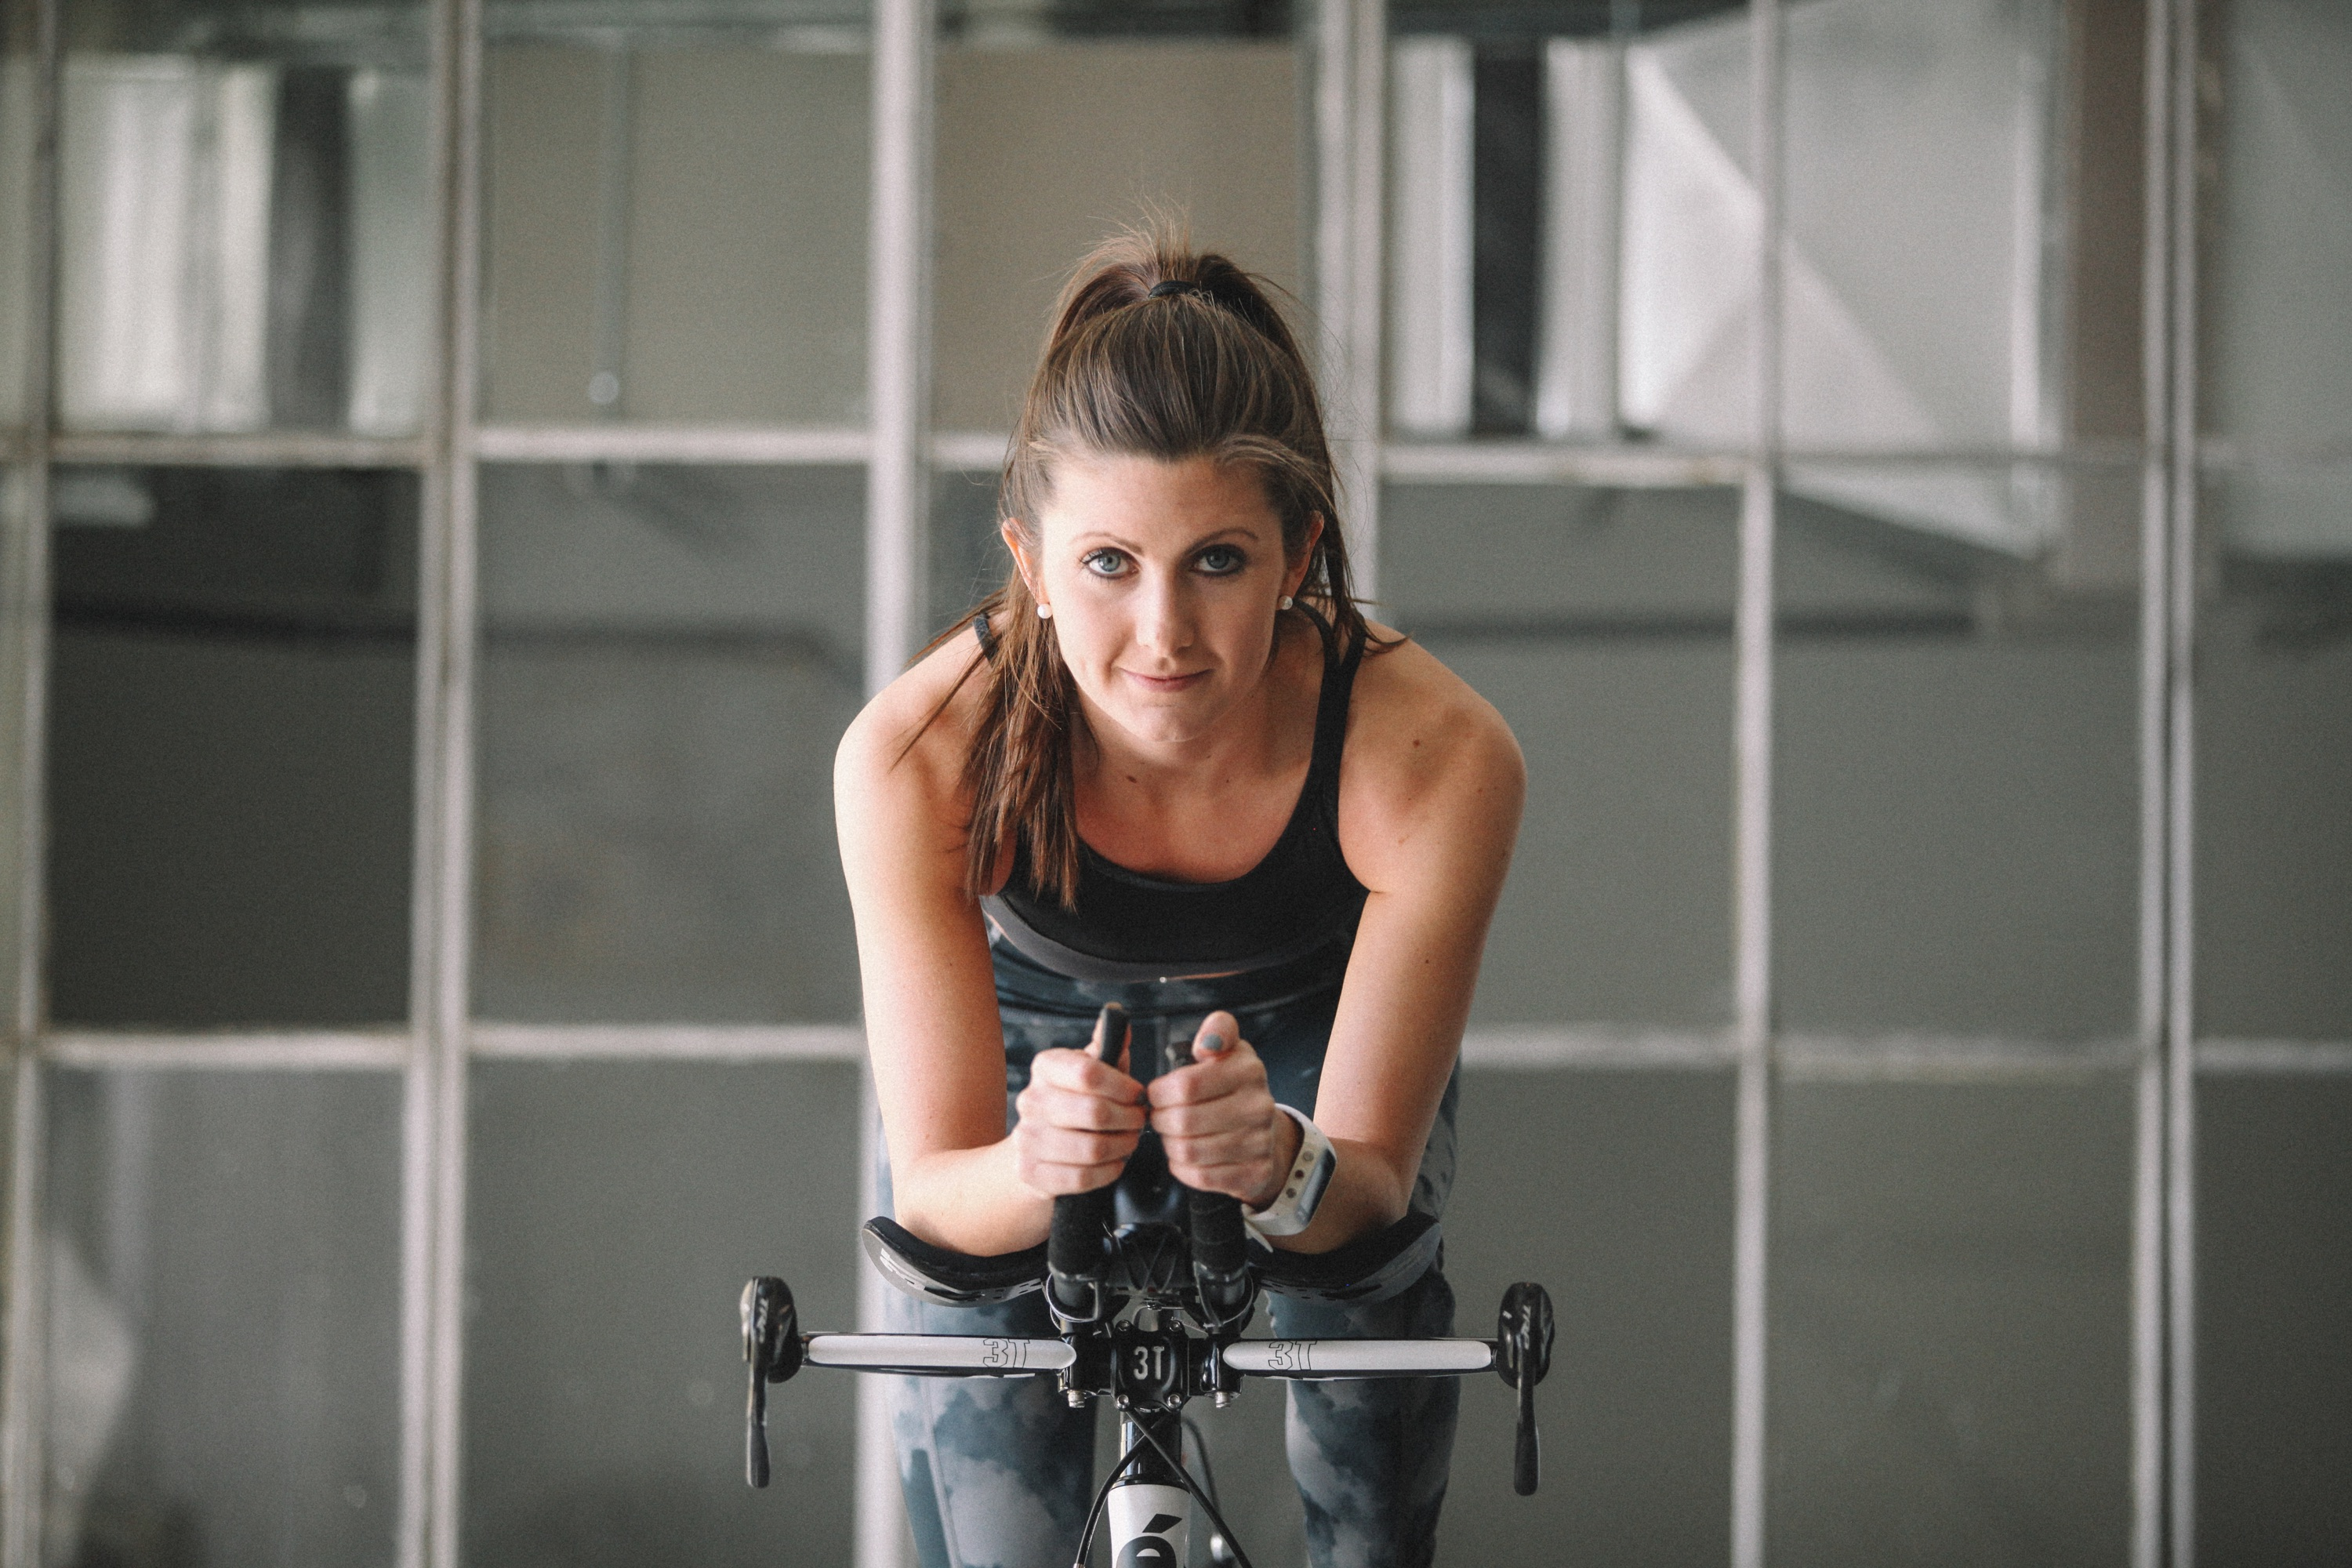 Ashley Niblett riding the bike during her fitness routine